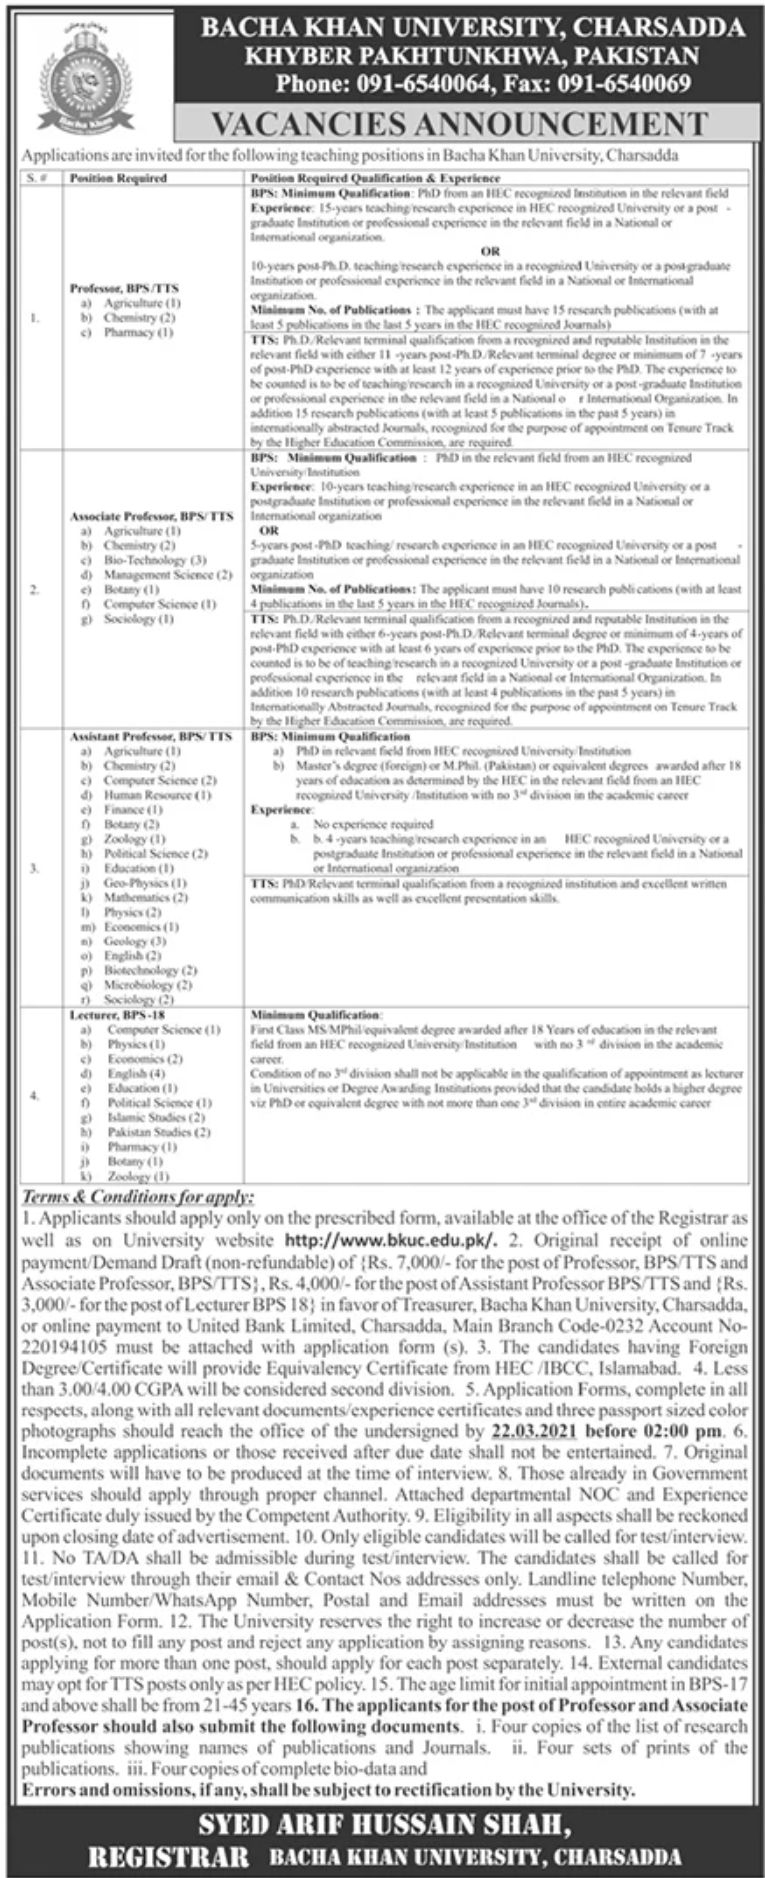 the-news-newspaper-latest-govt-private-jobs-today-in-pakistan-3-march-2021-nokristan.com